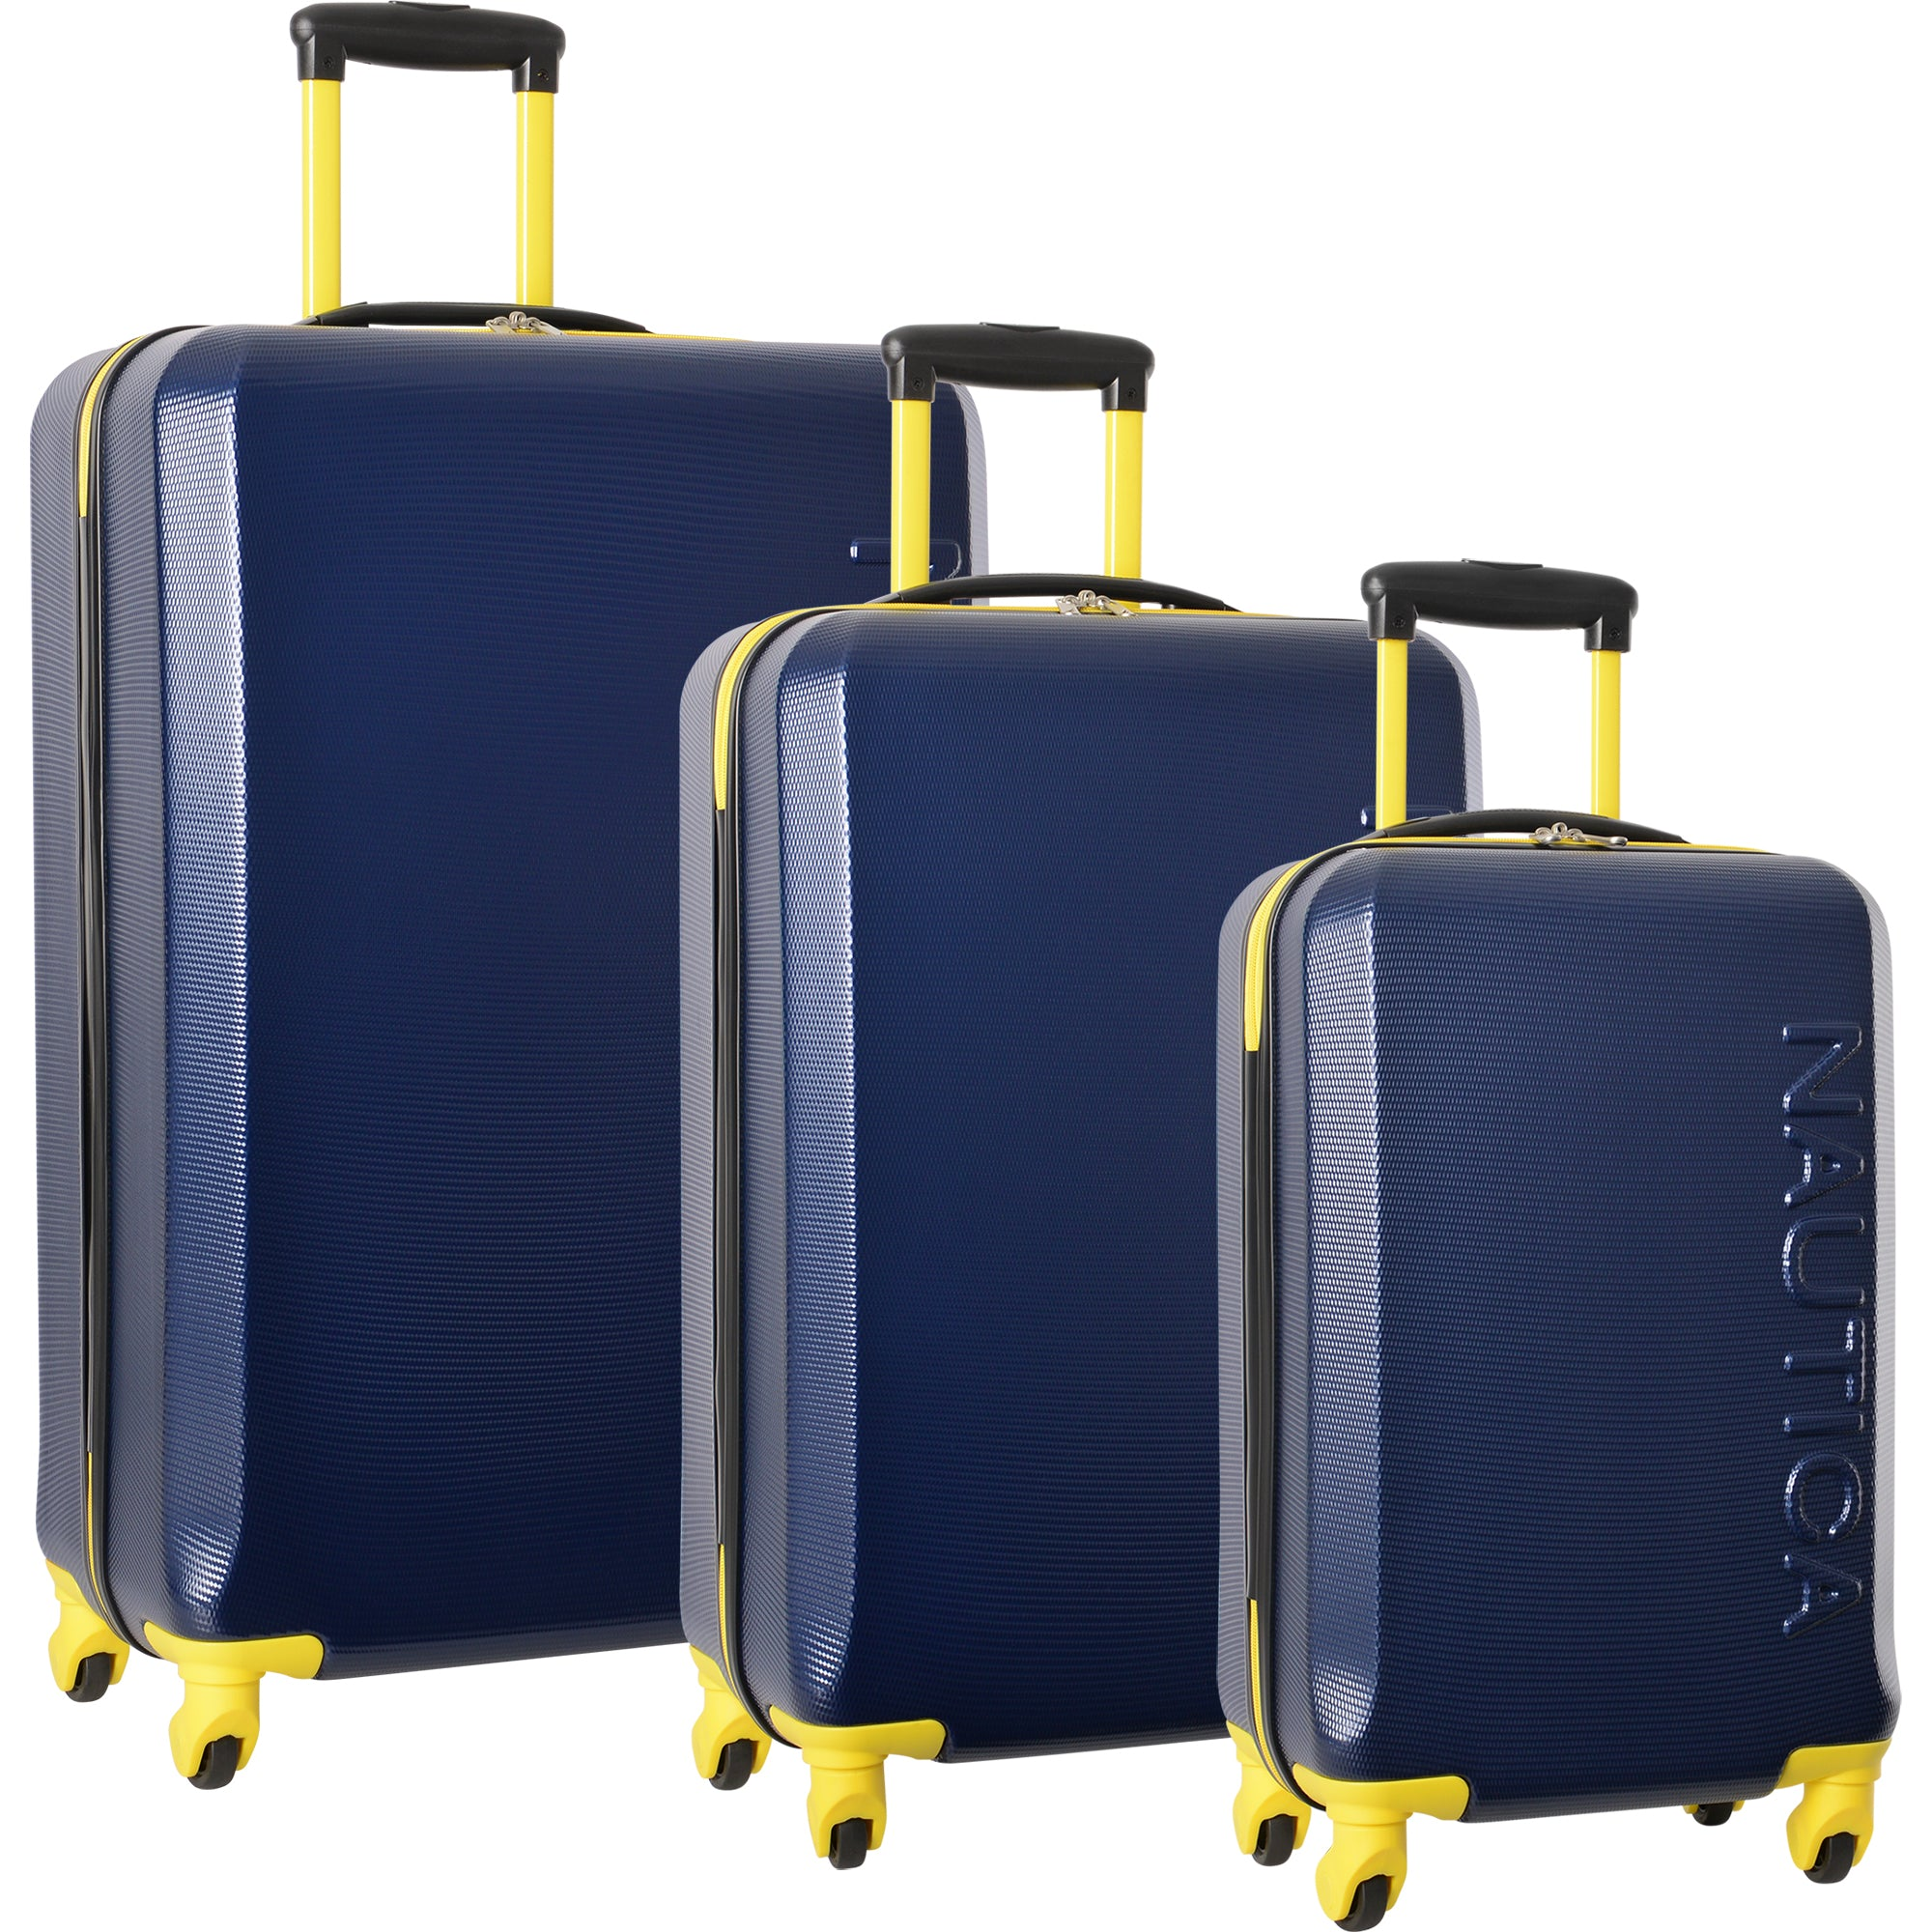 260df97f75ea Nautica Marina 3 Piece Hardside Spinner Luggage Set